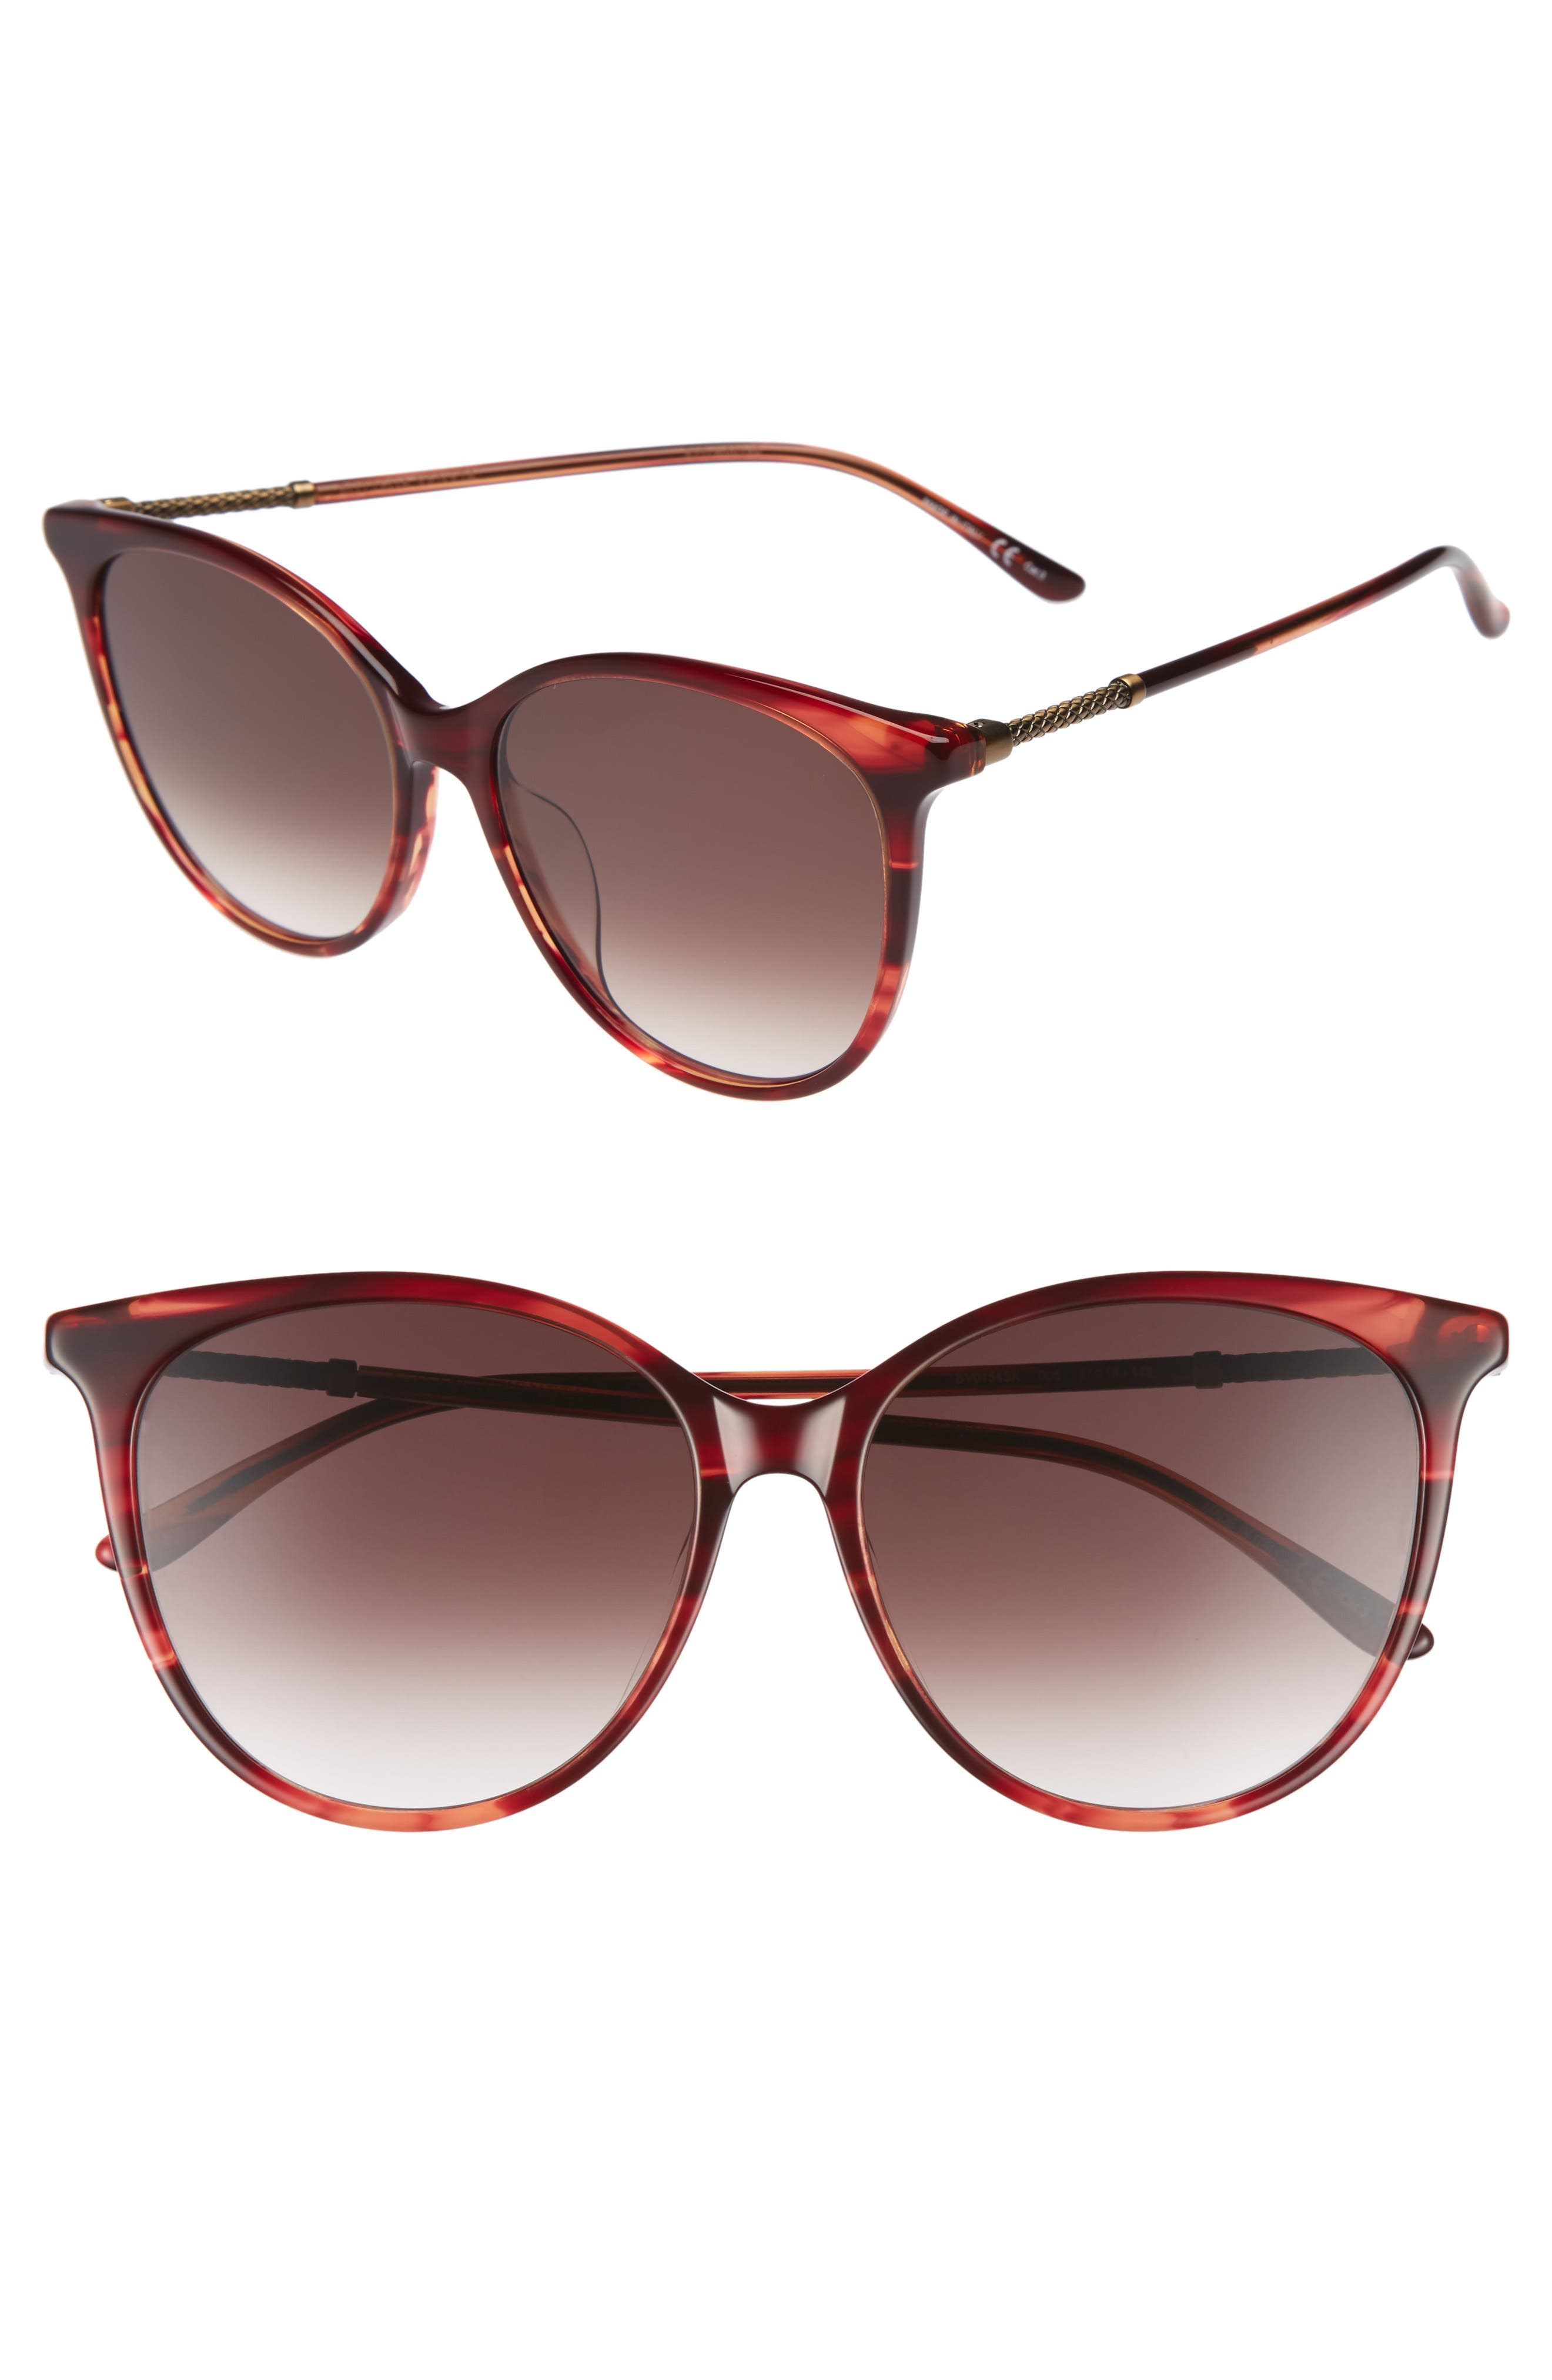 57mm Cat Eye Sunglasses,                         Main,                         color, Red